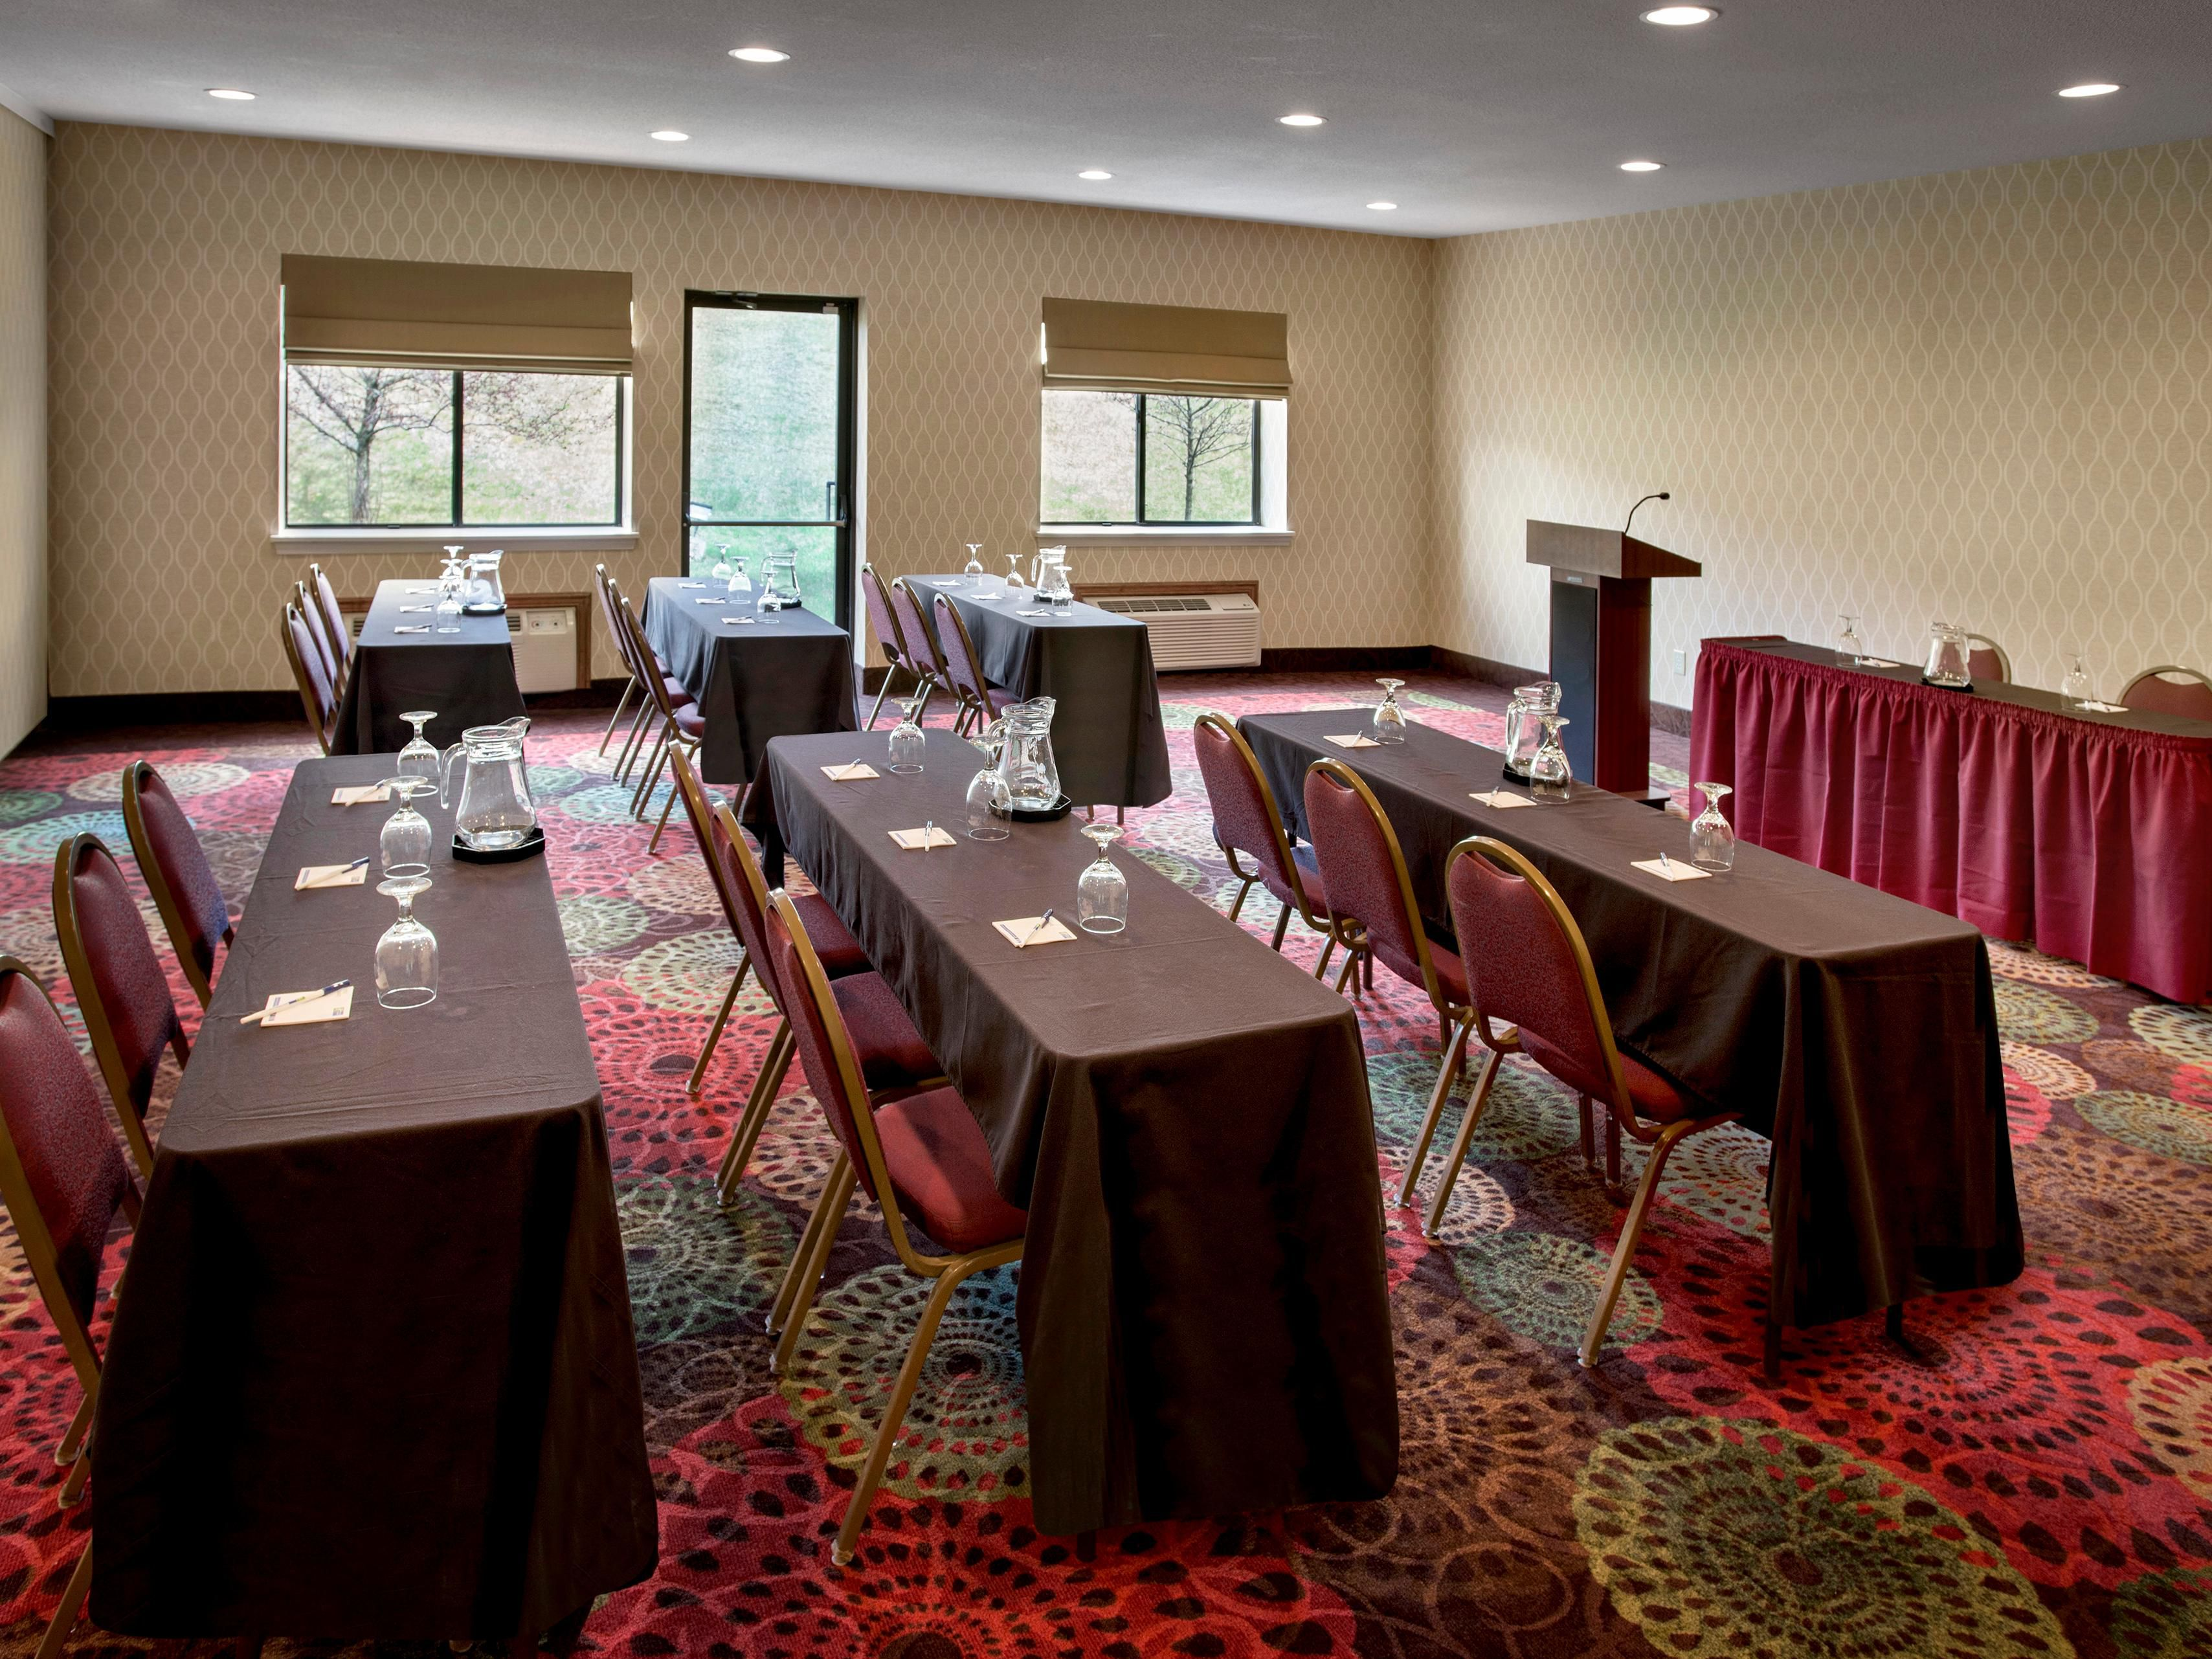 Use the Hudson Room or Empire Room classroom style.